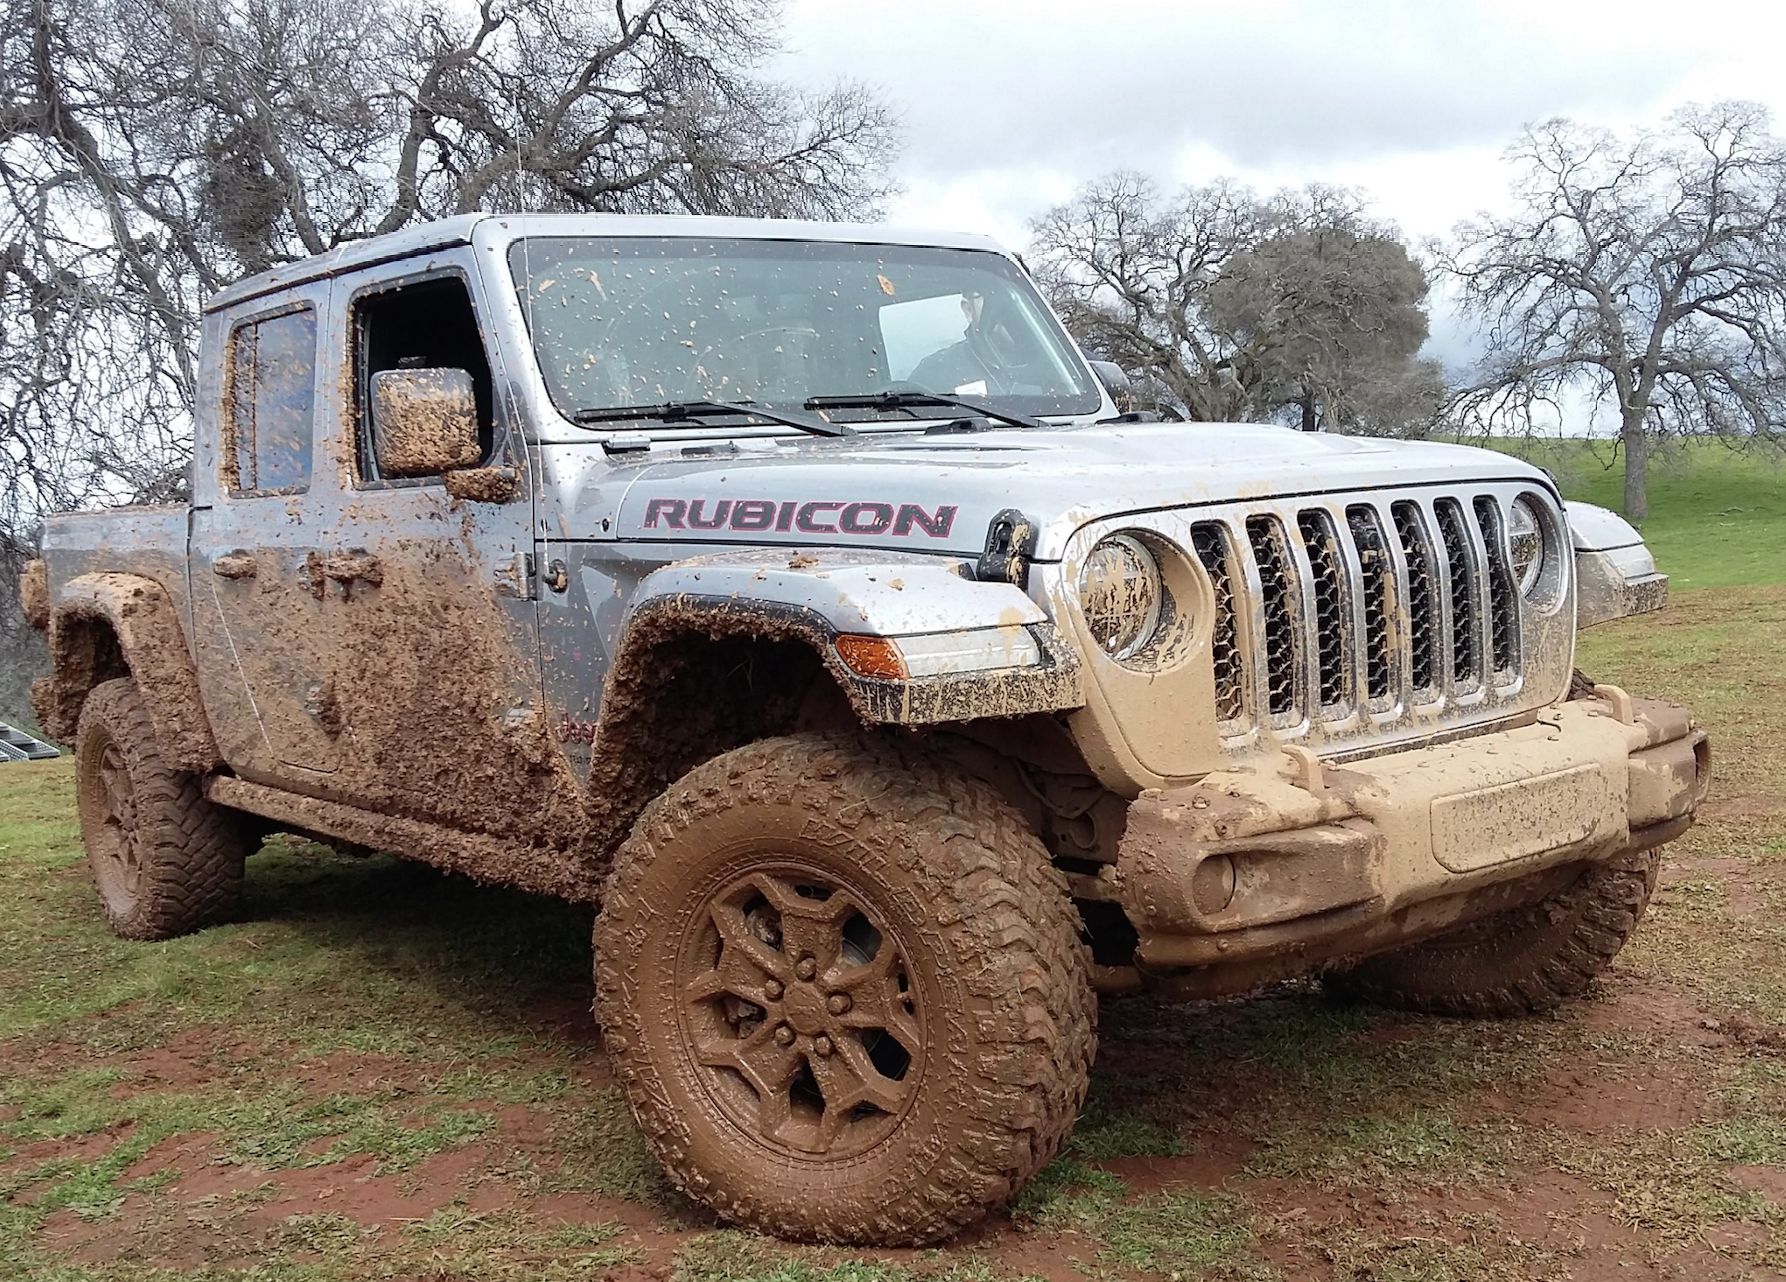 2019 Jeep Gladiator The Daily Drive | Consumer Guide®